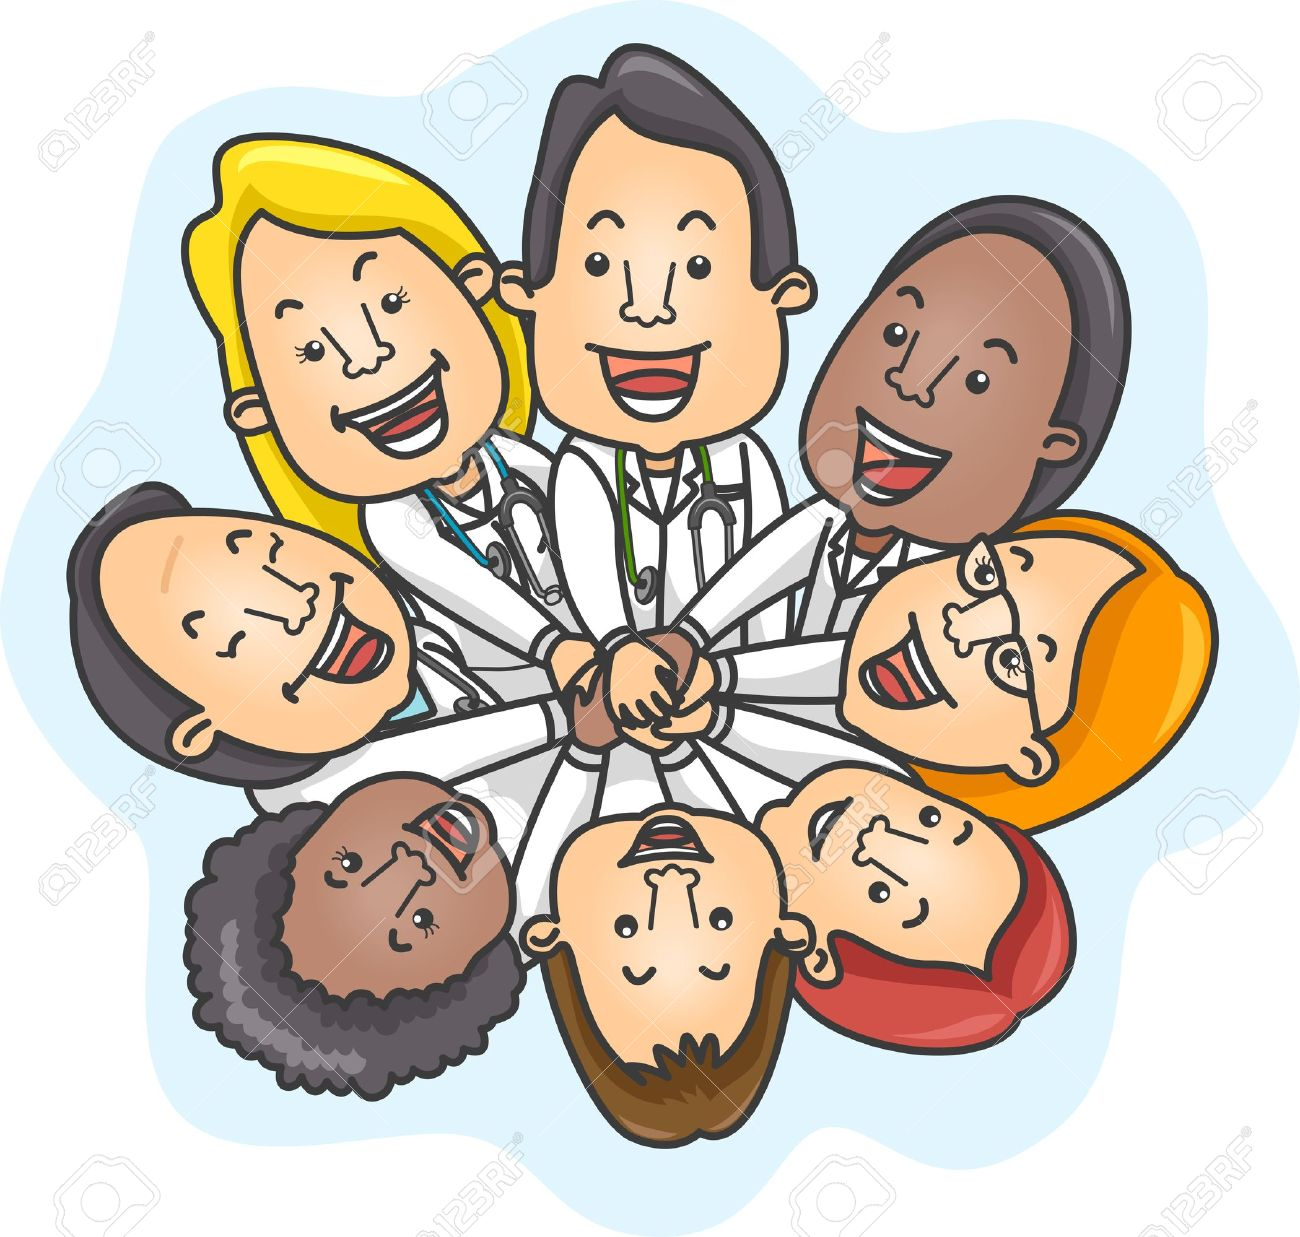 Illustration of a Team of Doctors Demonstrating Unity Stock Photo - 12575469